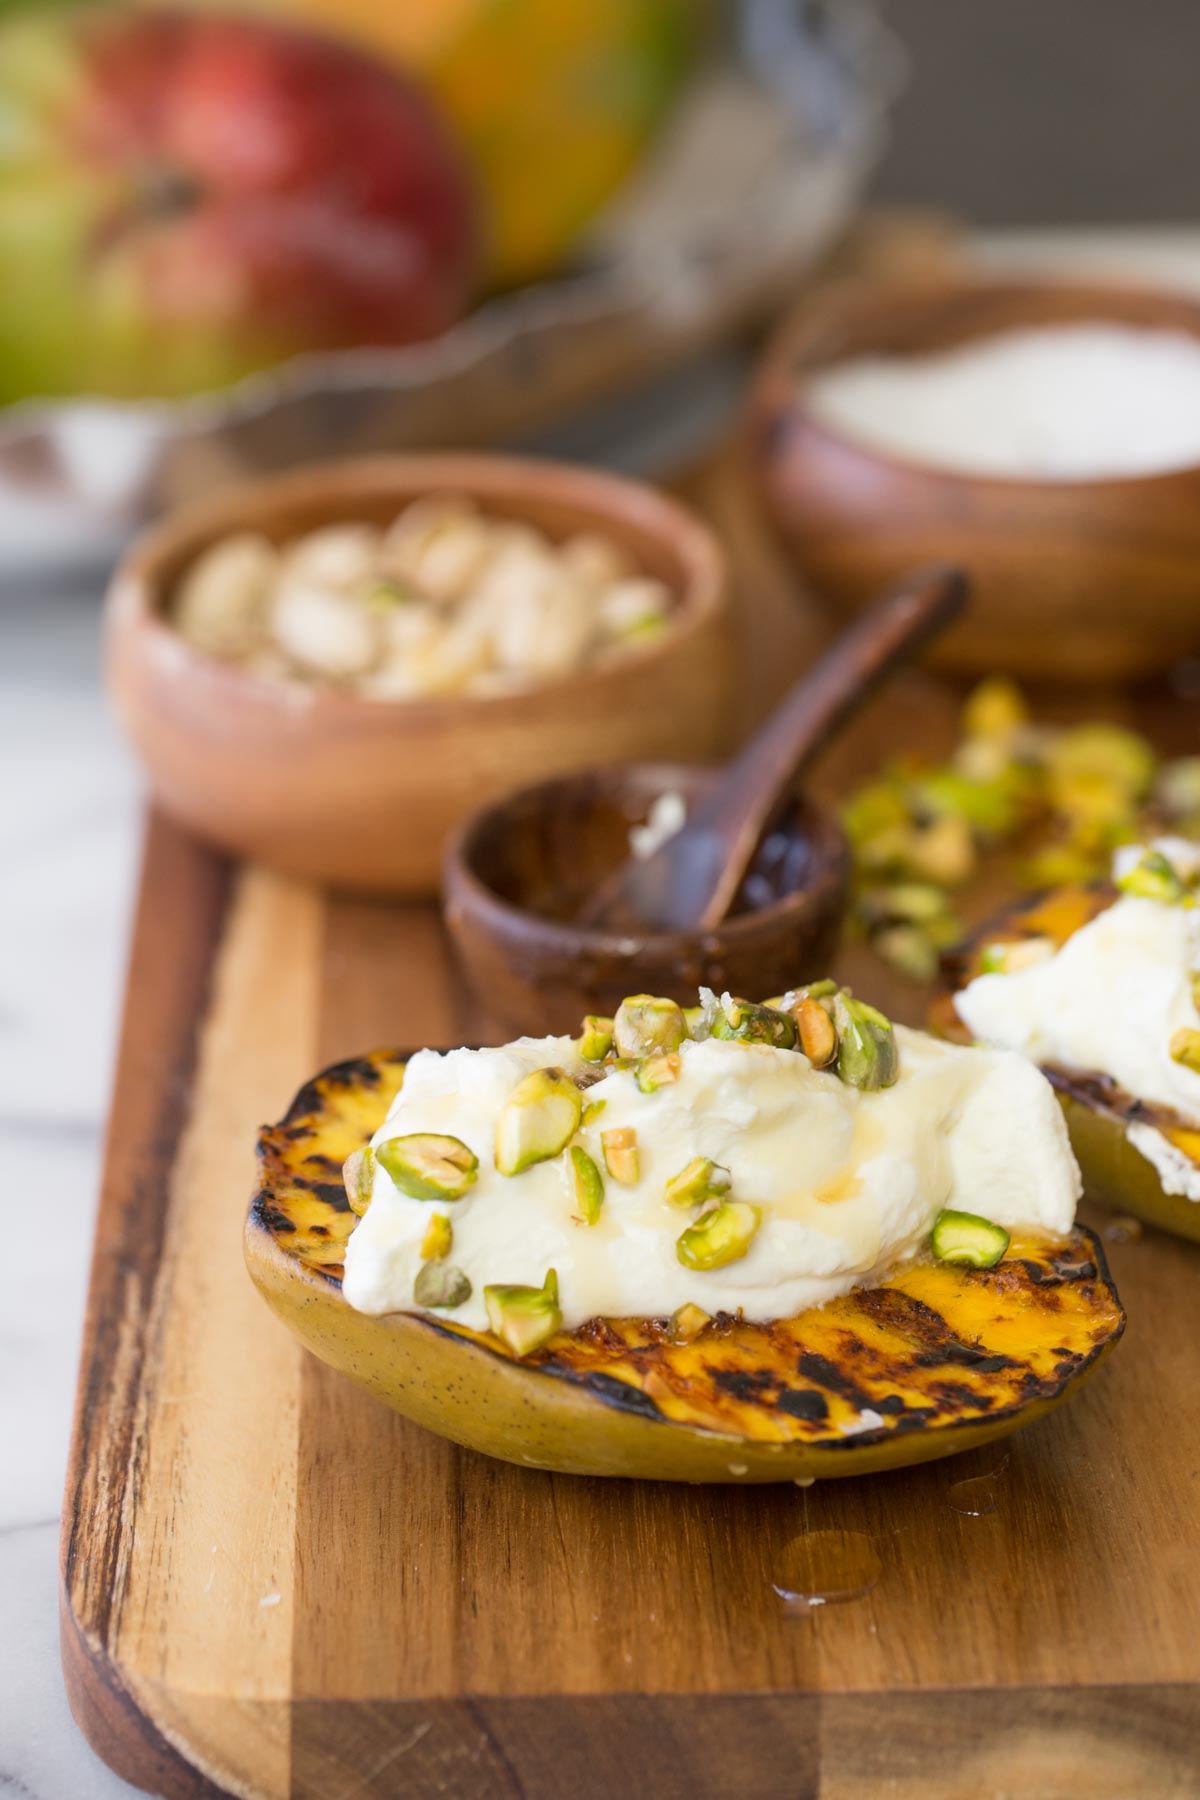 Wooden board with Grilled Mango With Honey Ricotta Whipped Cream